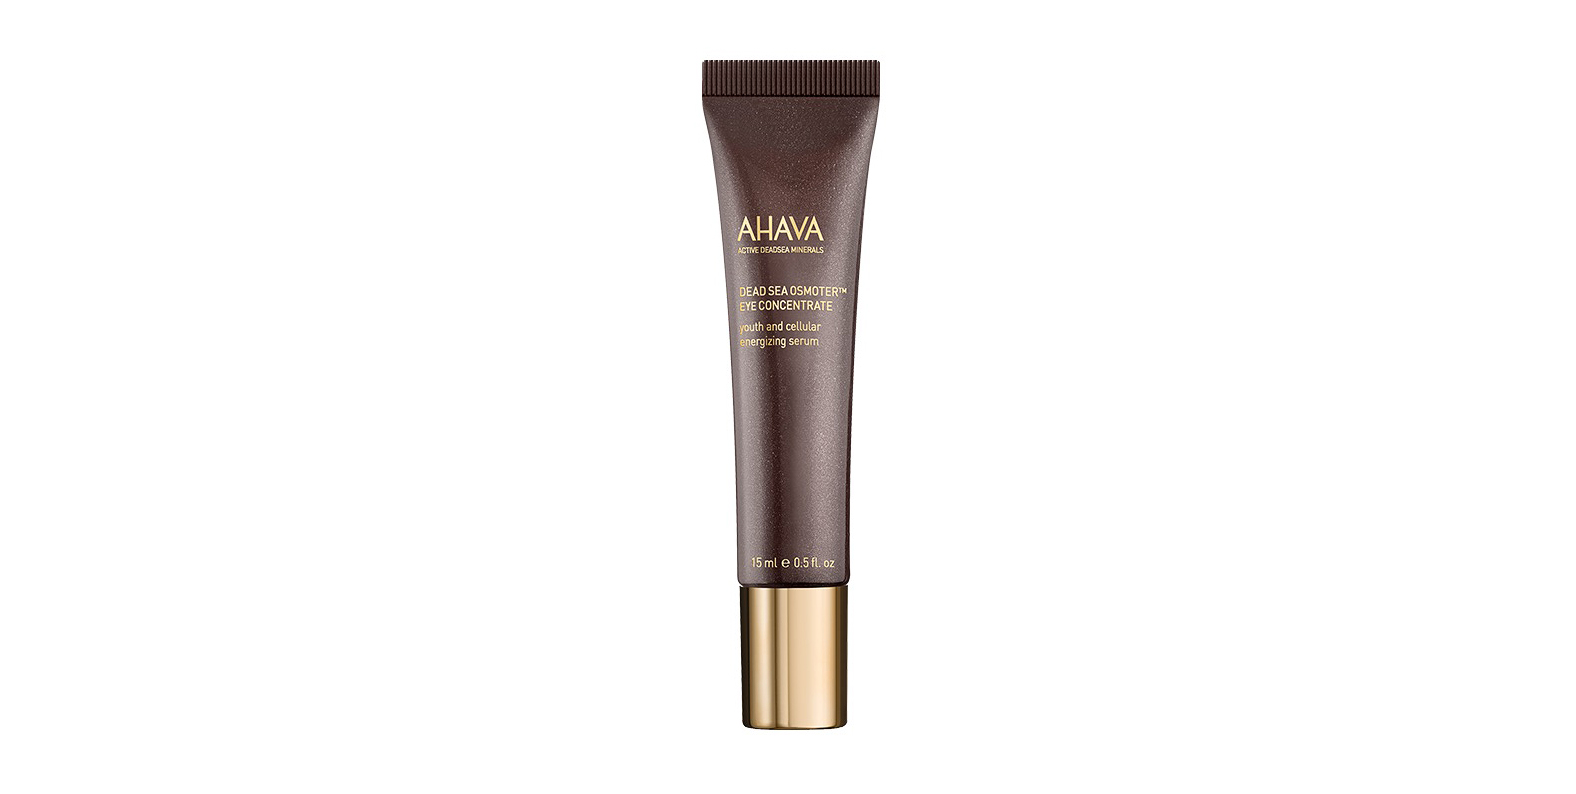 ahava dead sea osmoter eye concentrate